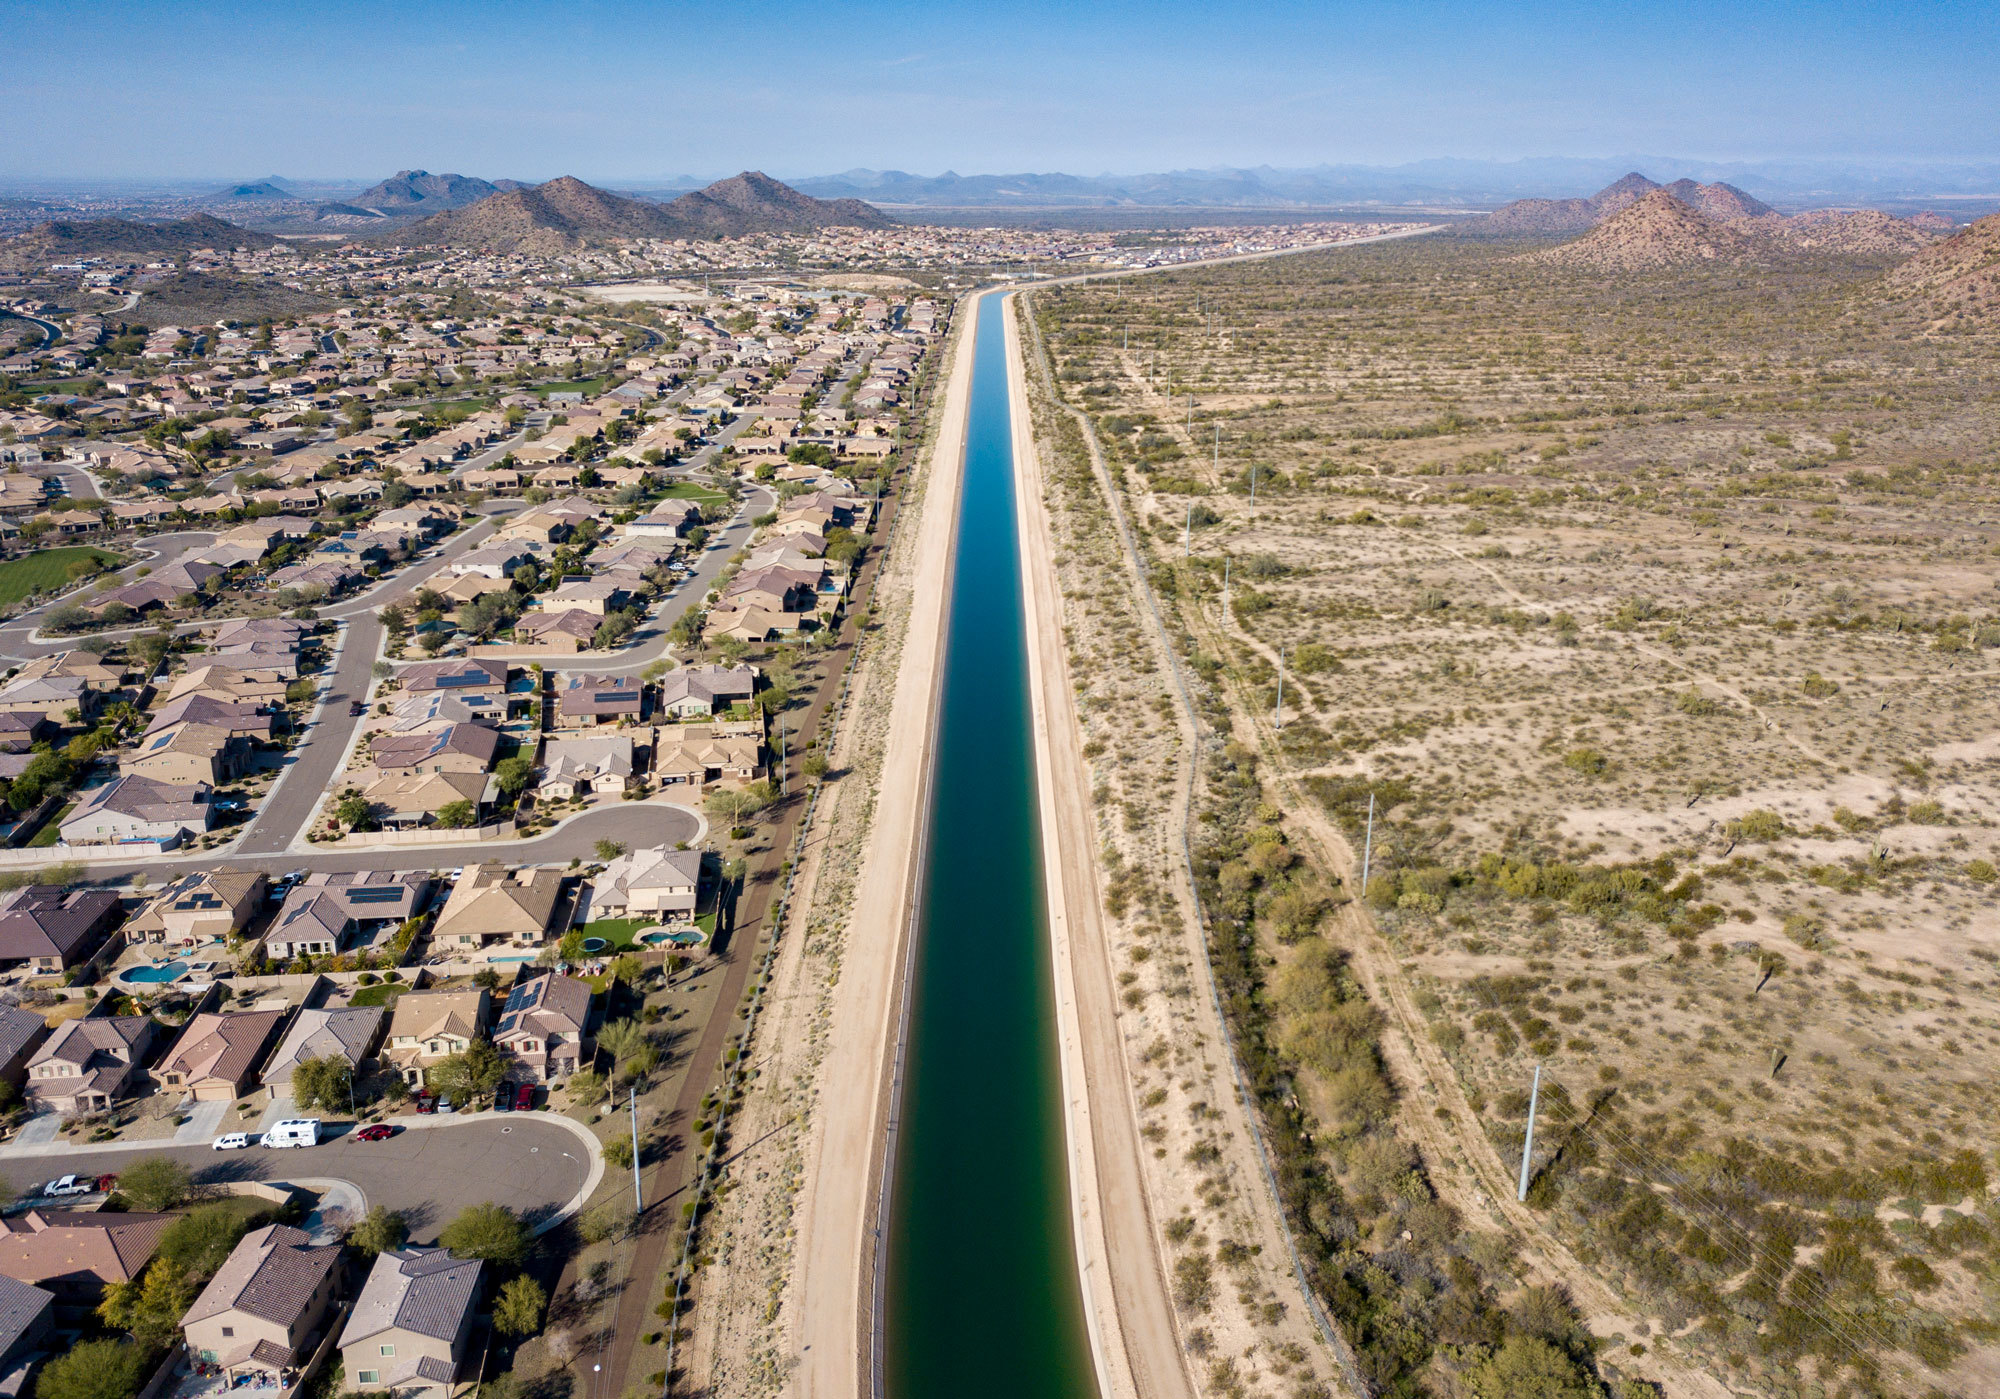 In Era of Drought, Phoenix Prepares for a Future Without ... Future City Of Phoenix Maps on future asia map, future pangea map, future texas map, future florida map, future new york map, future nyc map, future california map, future united states map, future hawaii map,